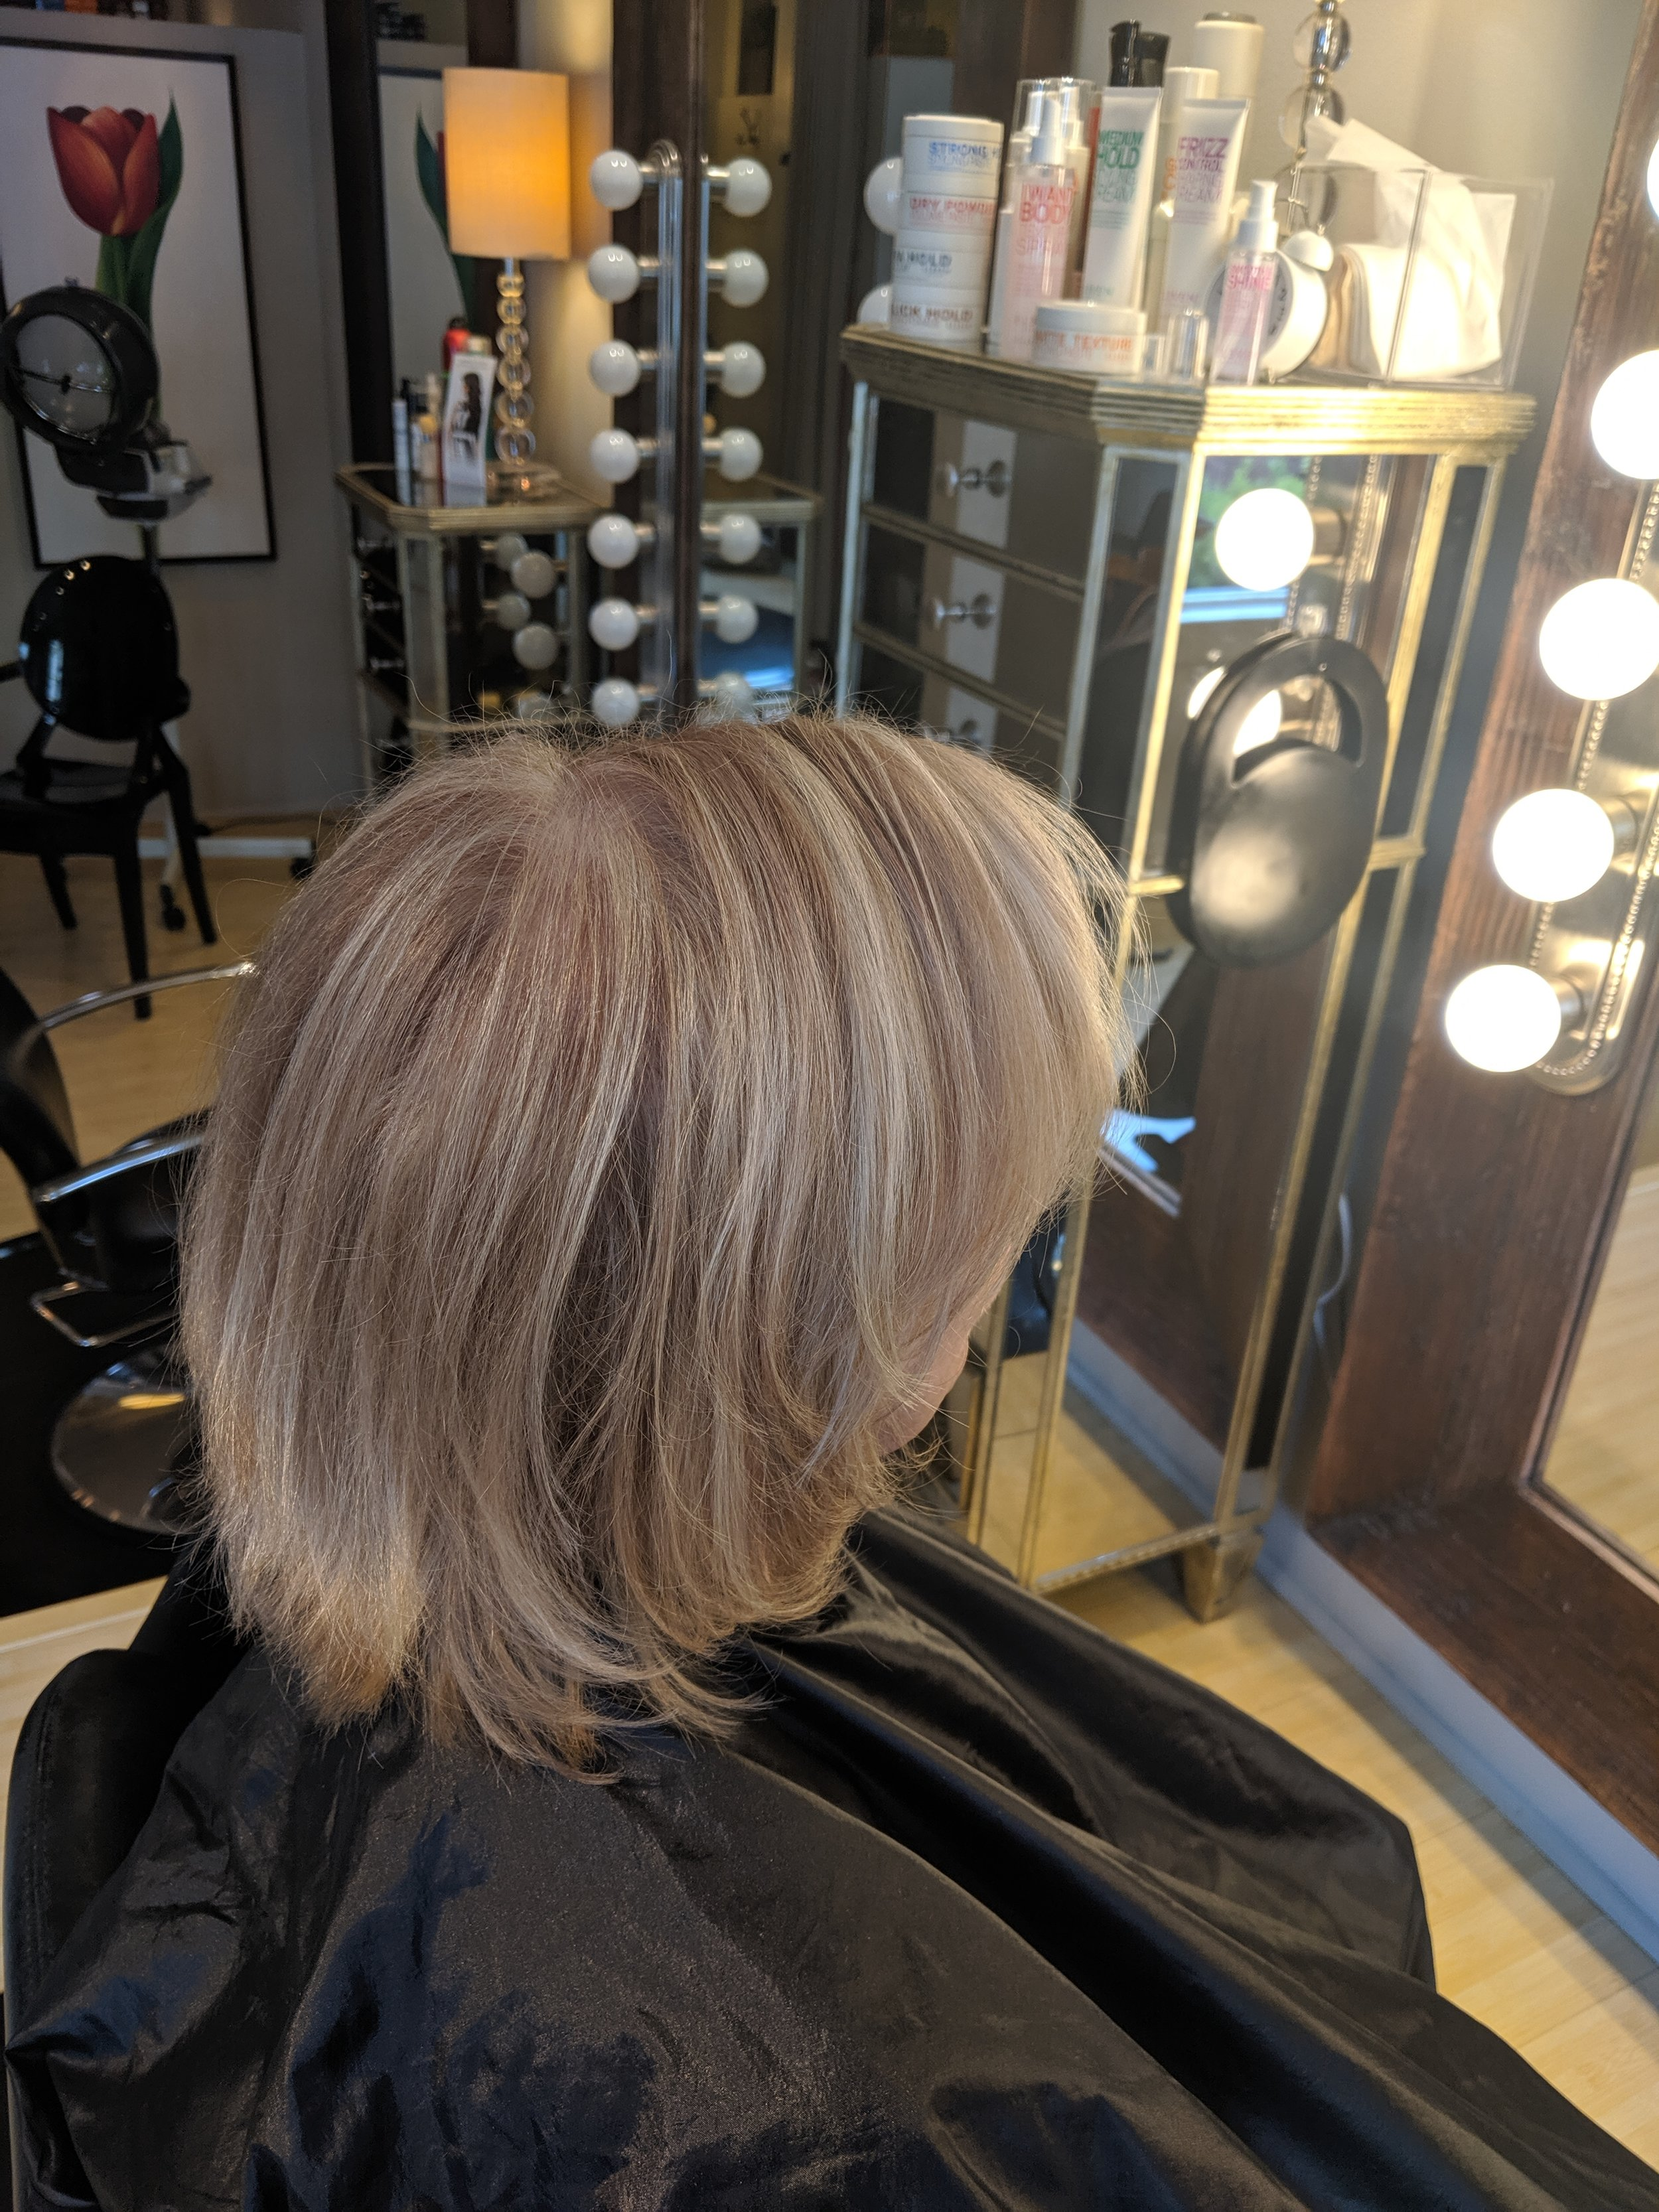 Highlight / Root touch